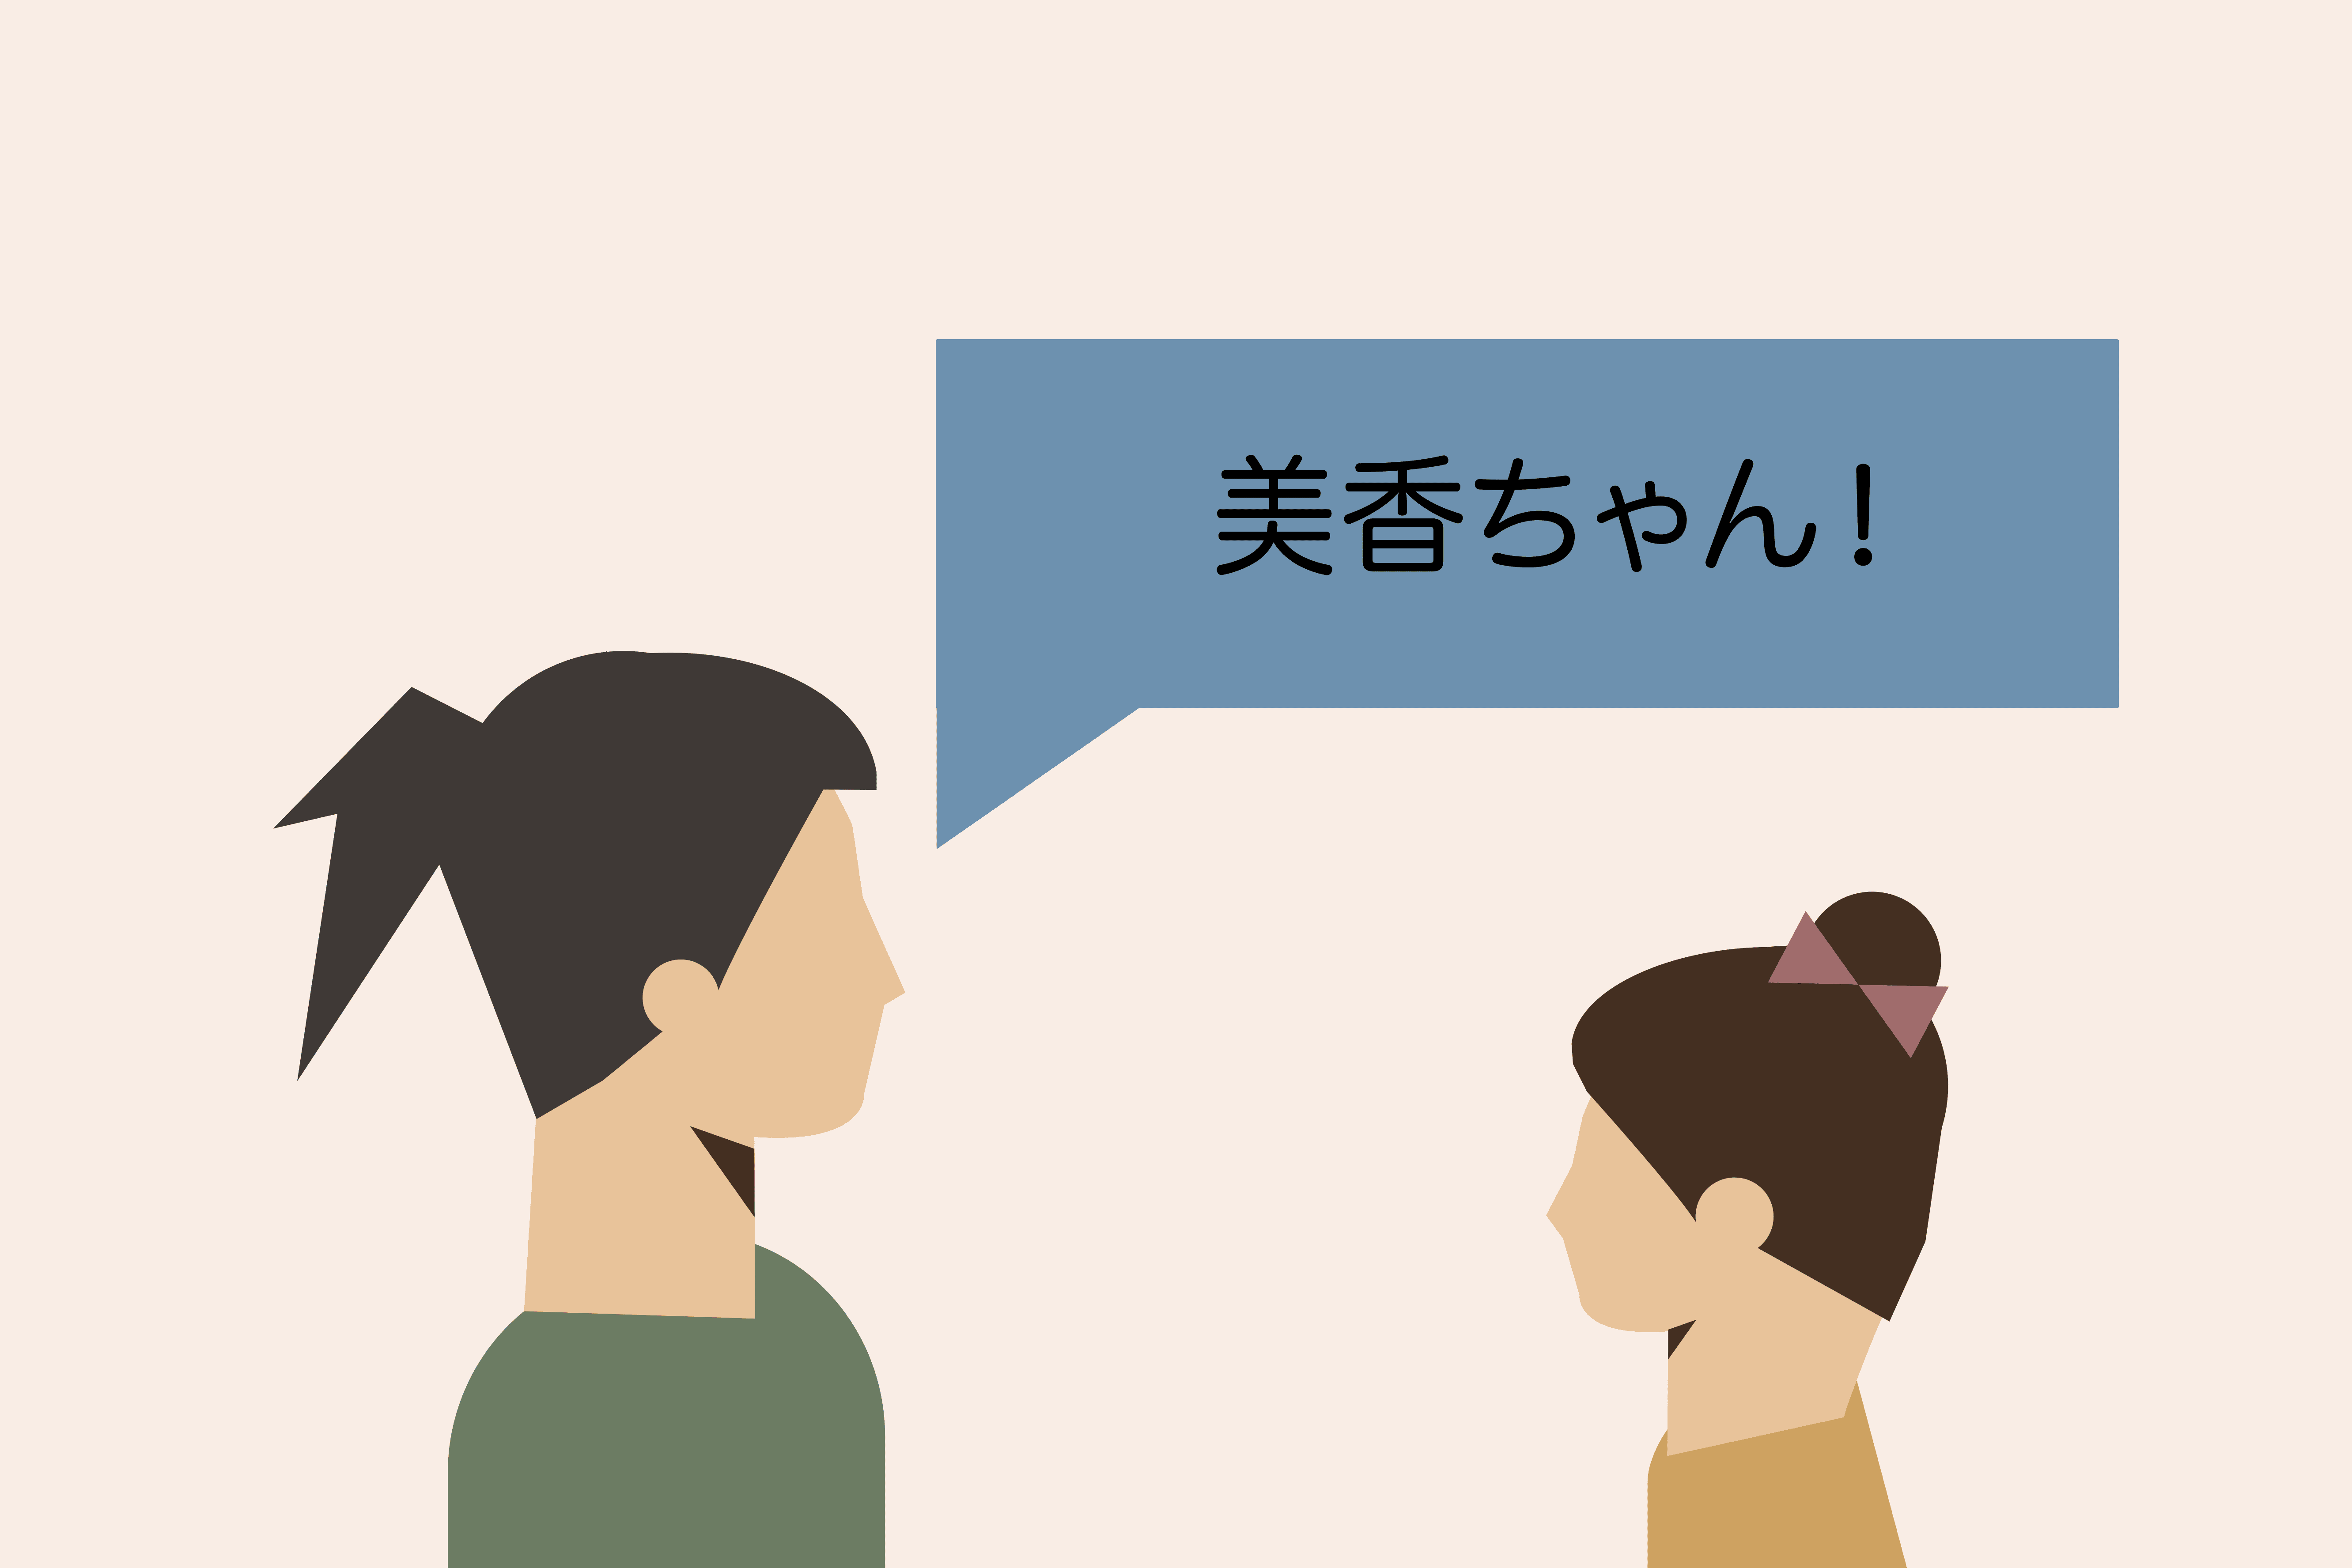 Using San Kun And Chan When Speaking Japanese